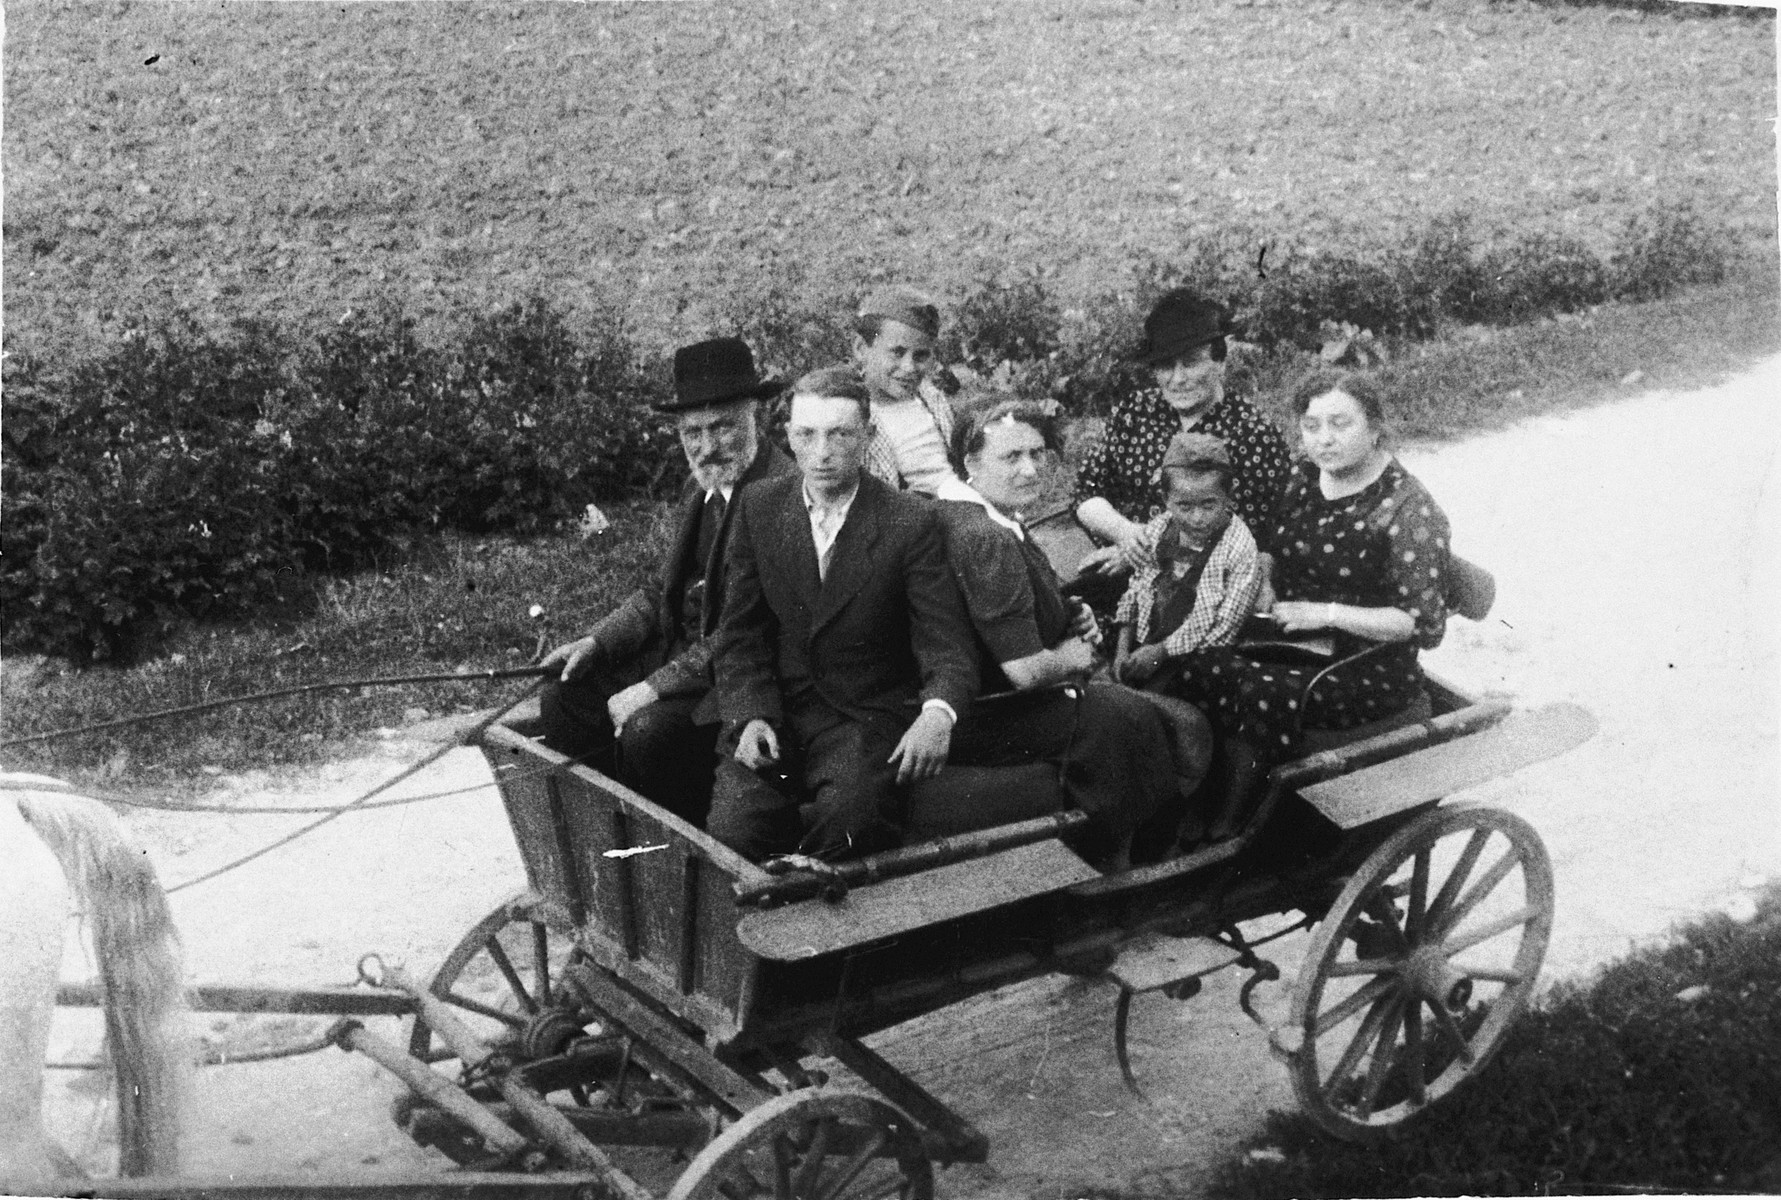 A Jewish family goes for a ride in a horse-drawn wagon.  Among those pictured are: Josef Jam (driver), Chaim Dov Jam (next to the driver), Maurice Friedberg (behind the driver), Ida (Jam) Friedberg (center), Simon Friedberg (child next to Ida), Memel Jam (behind Simon wearing a hat).